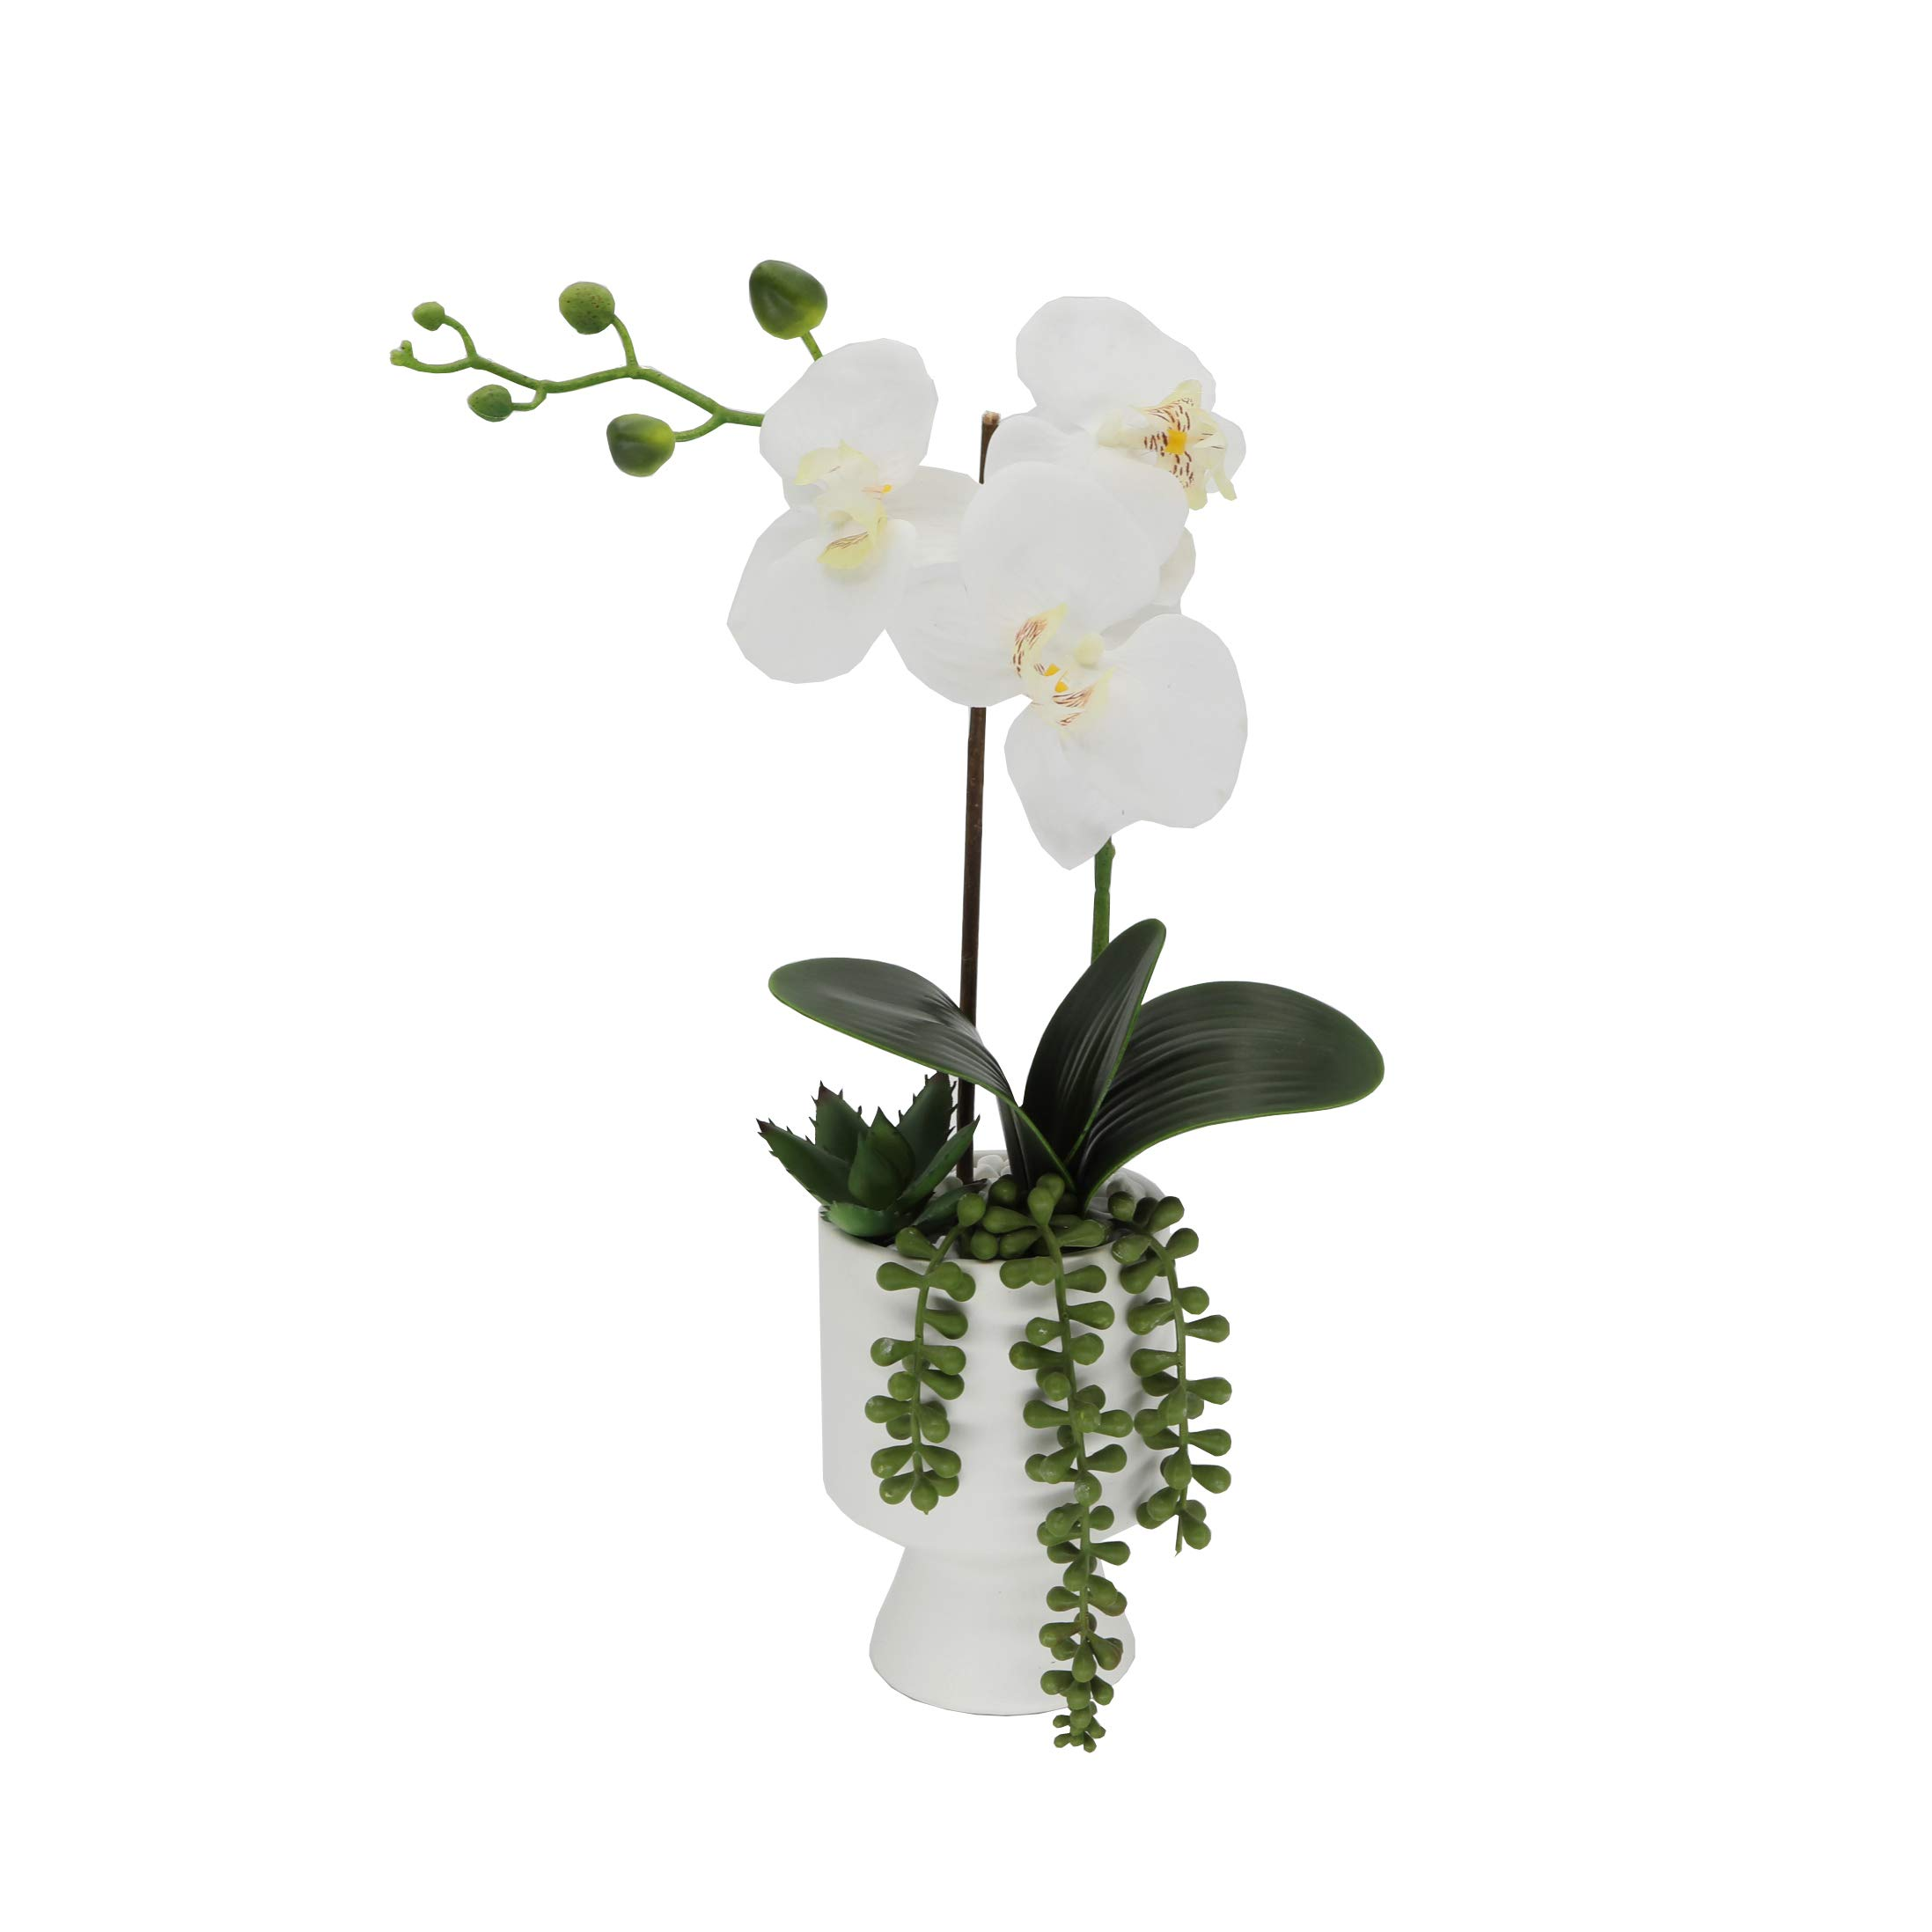 Flora Bunda Artificial Flower 16 in H Real- Touch Orchids in Ceramic Pot,White